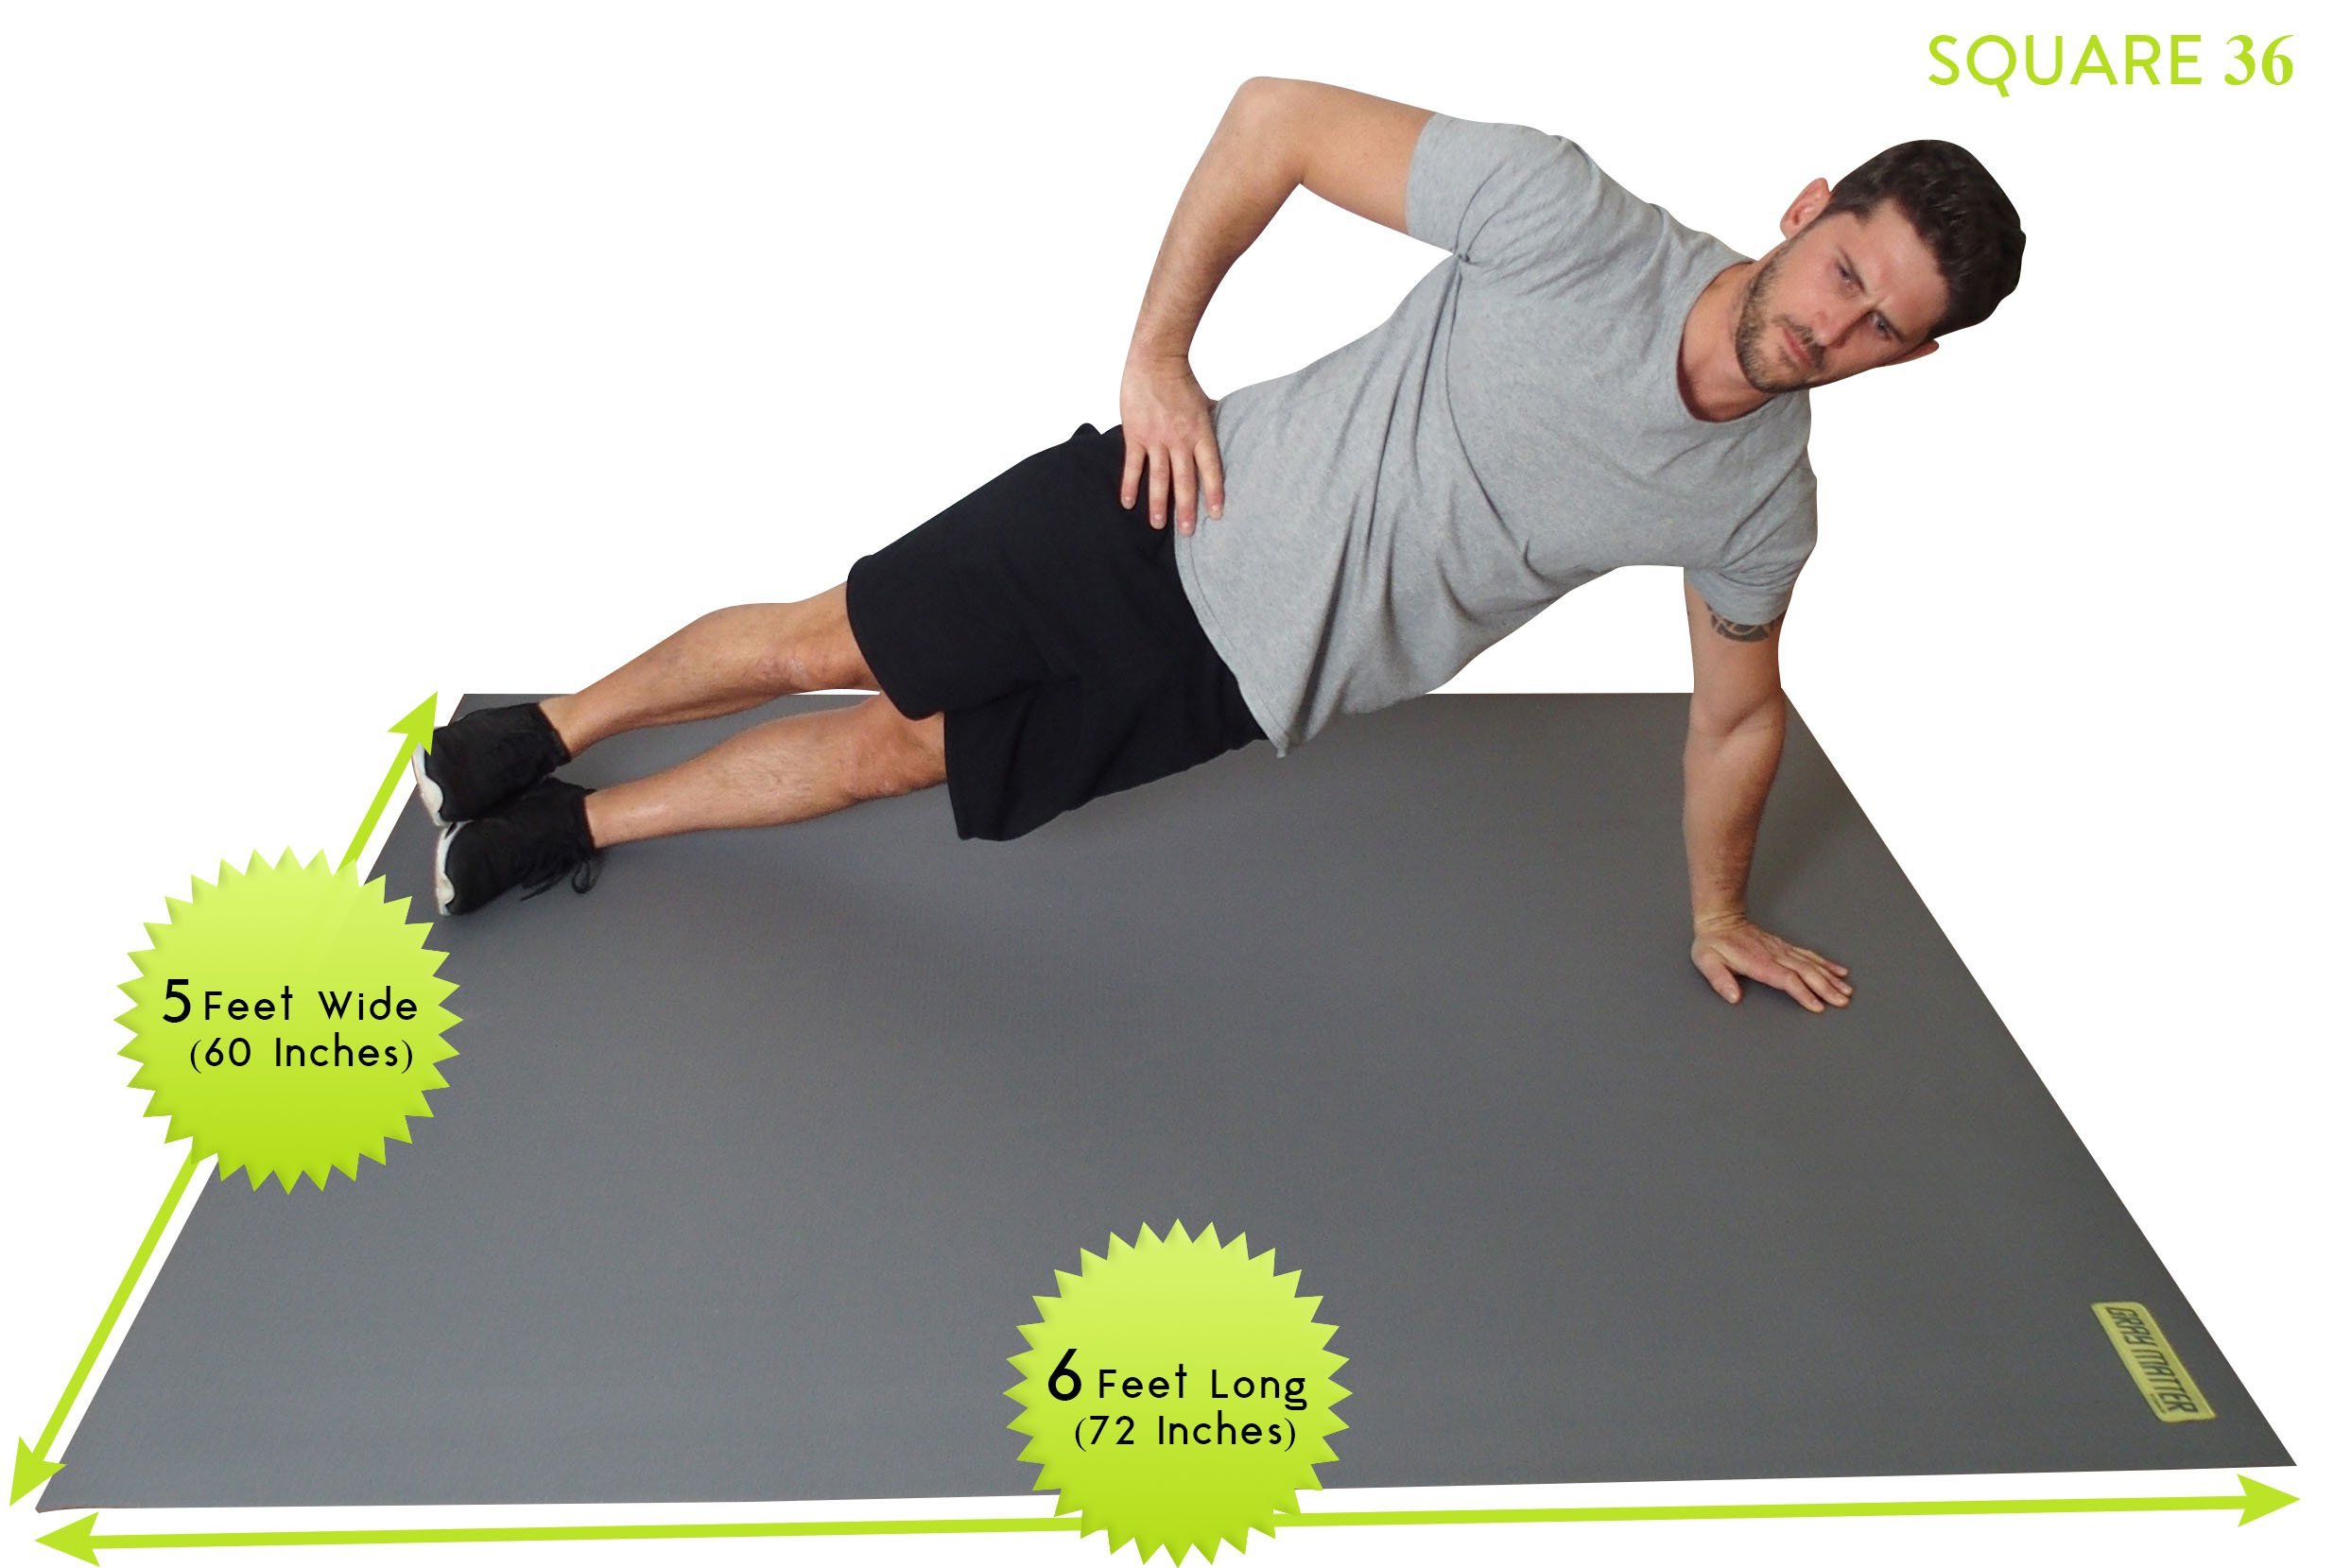 Large Exercise Mat For Cardio Workouts 72'' Long x 60'' Wide x 7mm Thick (6' x 5' x 7mm). For Home-Based Workouts With or Without SHOES. Comes With a Storage Bag & Storage Straps. by Square36 (Image #5)